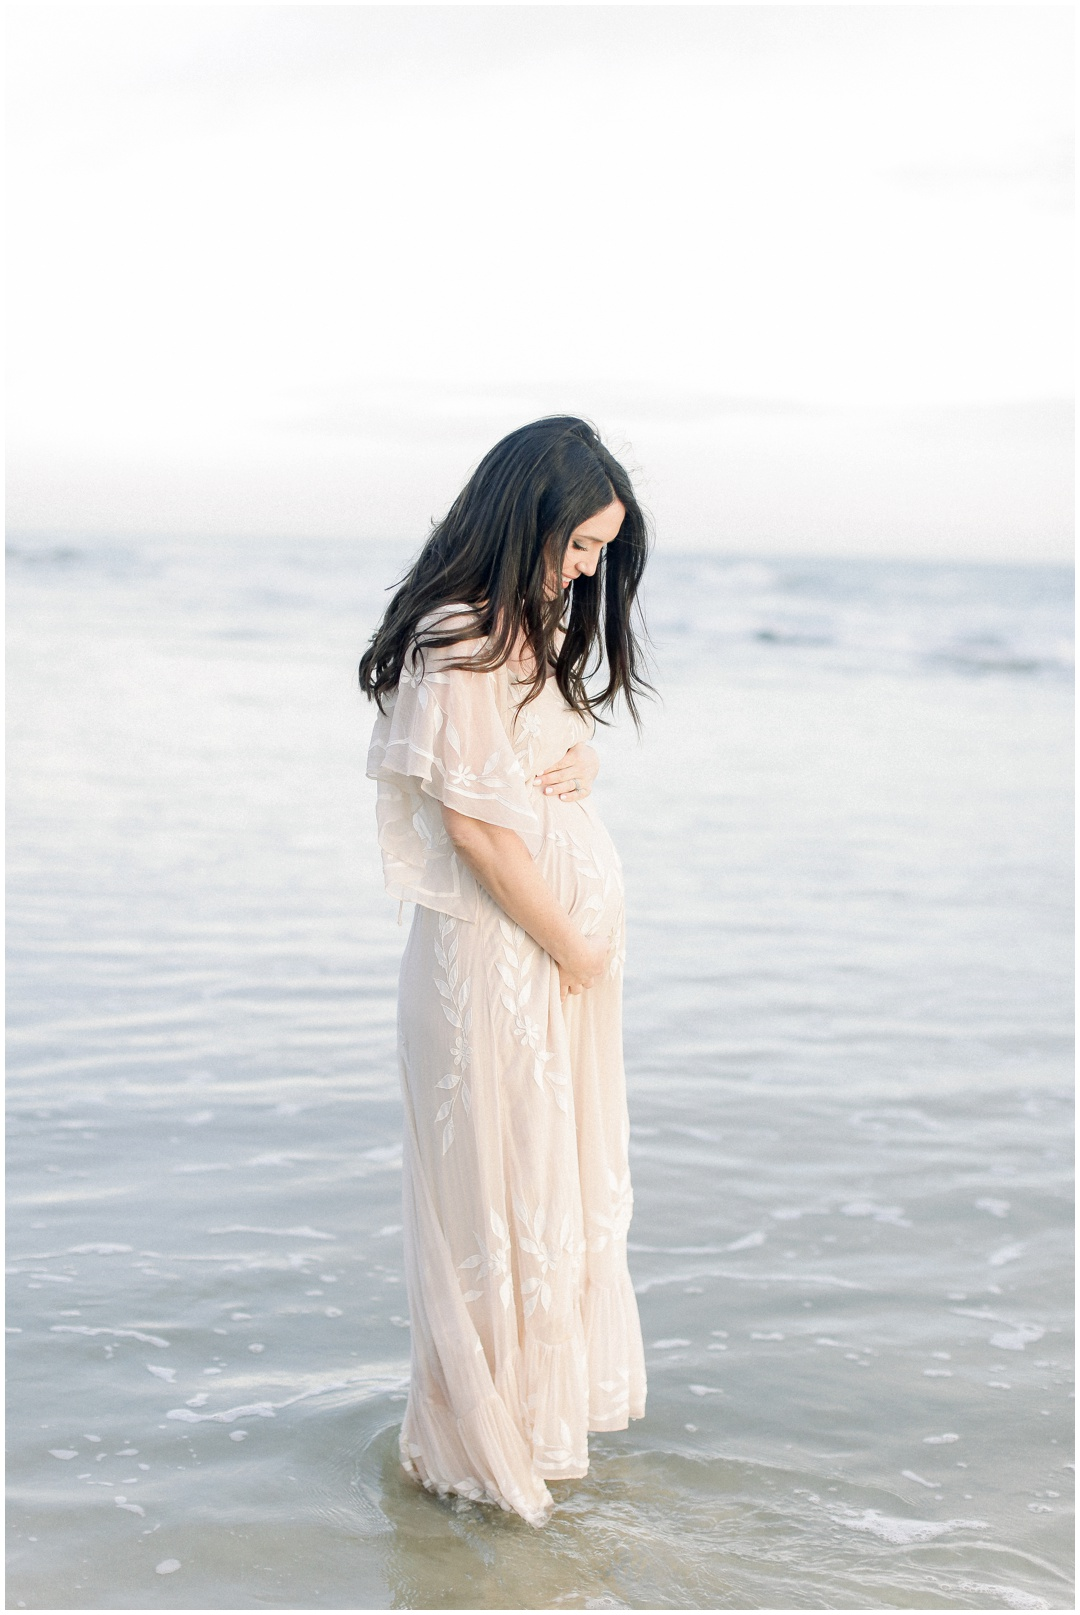 Newport_Beach_Newborn_Light_Airy_Natural_Photographer_Newport_Beach_Photographer_Orange_County_Family_Photographer_Cori_Kleckner_Photography_Huntington_Beach_Photographer_Family_OC_Newborn_Danielle_Lawley_Parker_Maternity_Family_Jordan_Lawley_3363.jpg